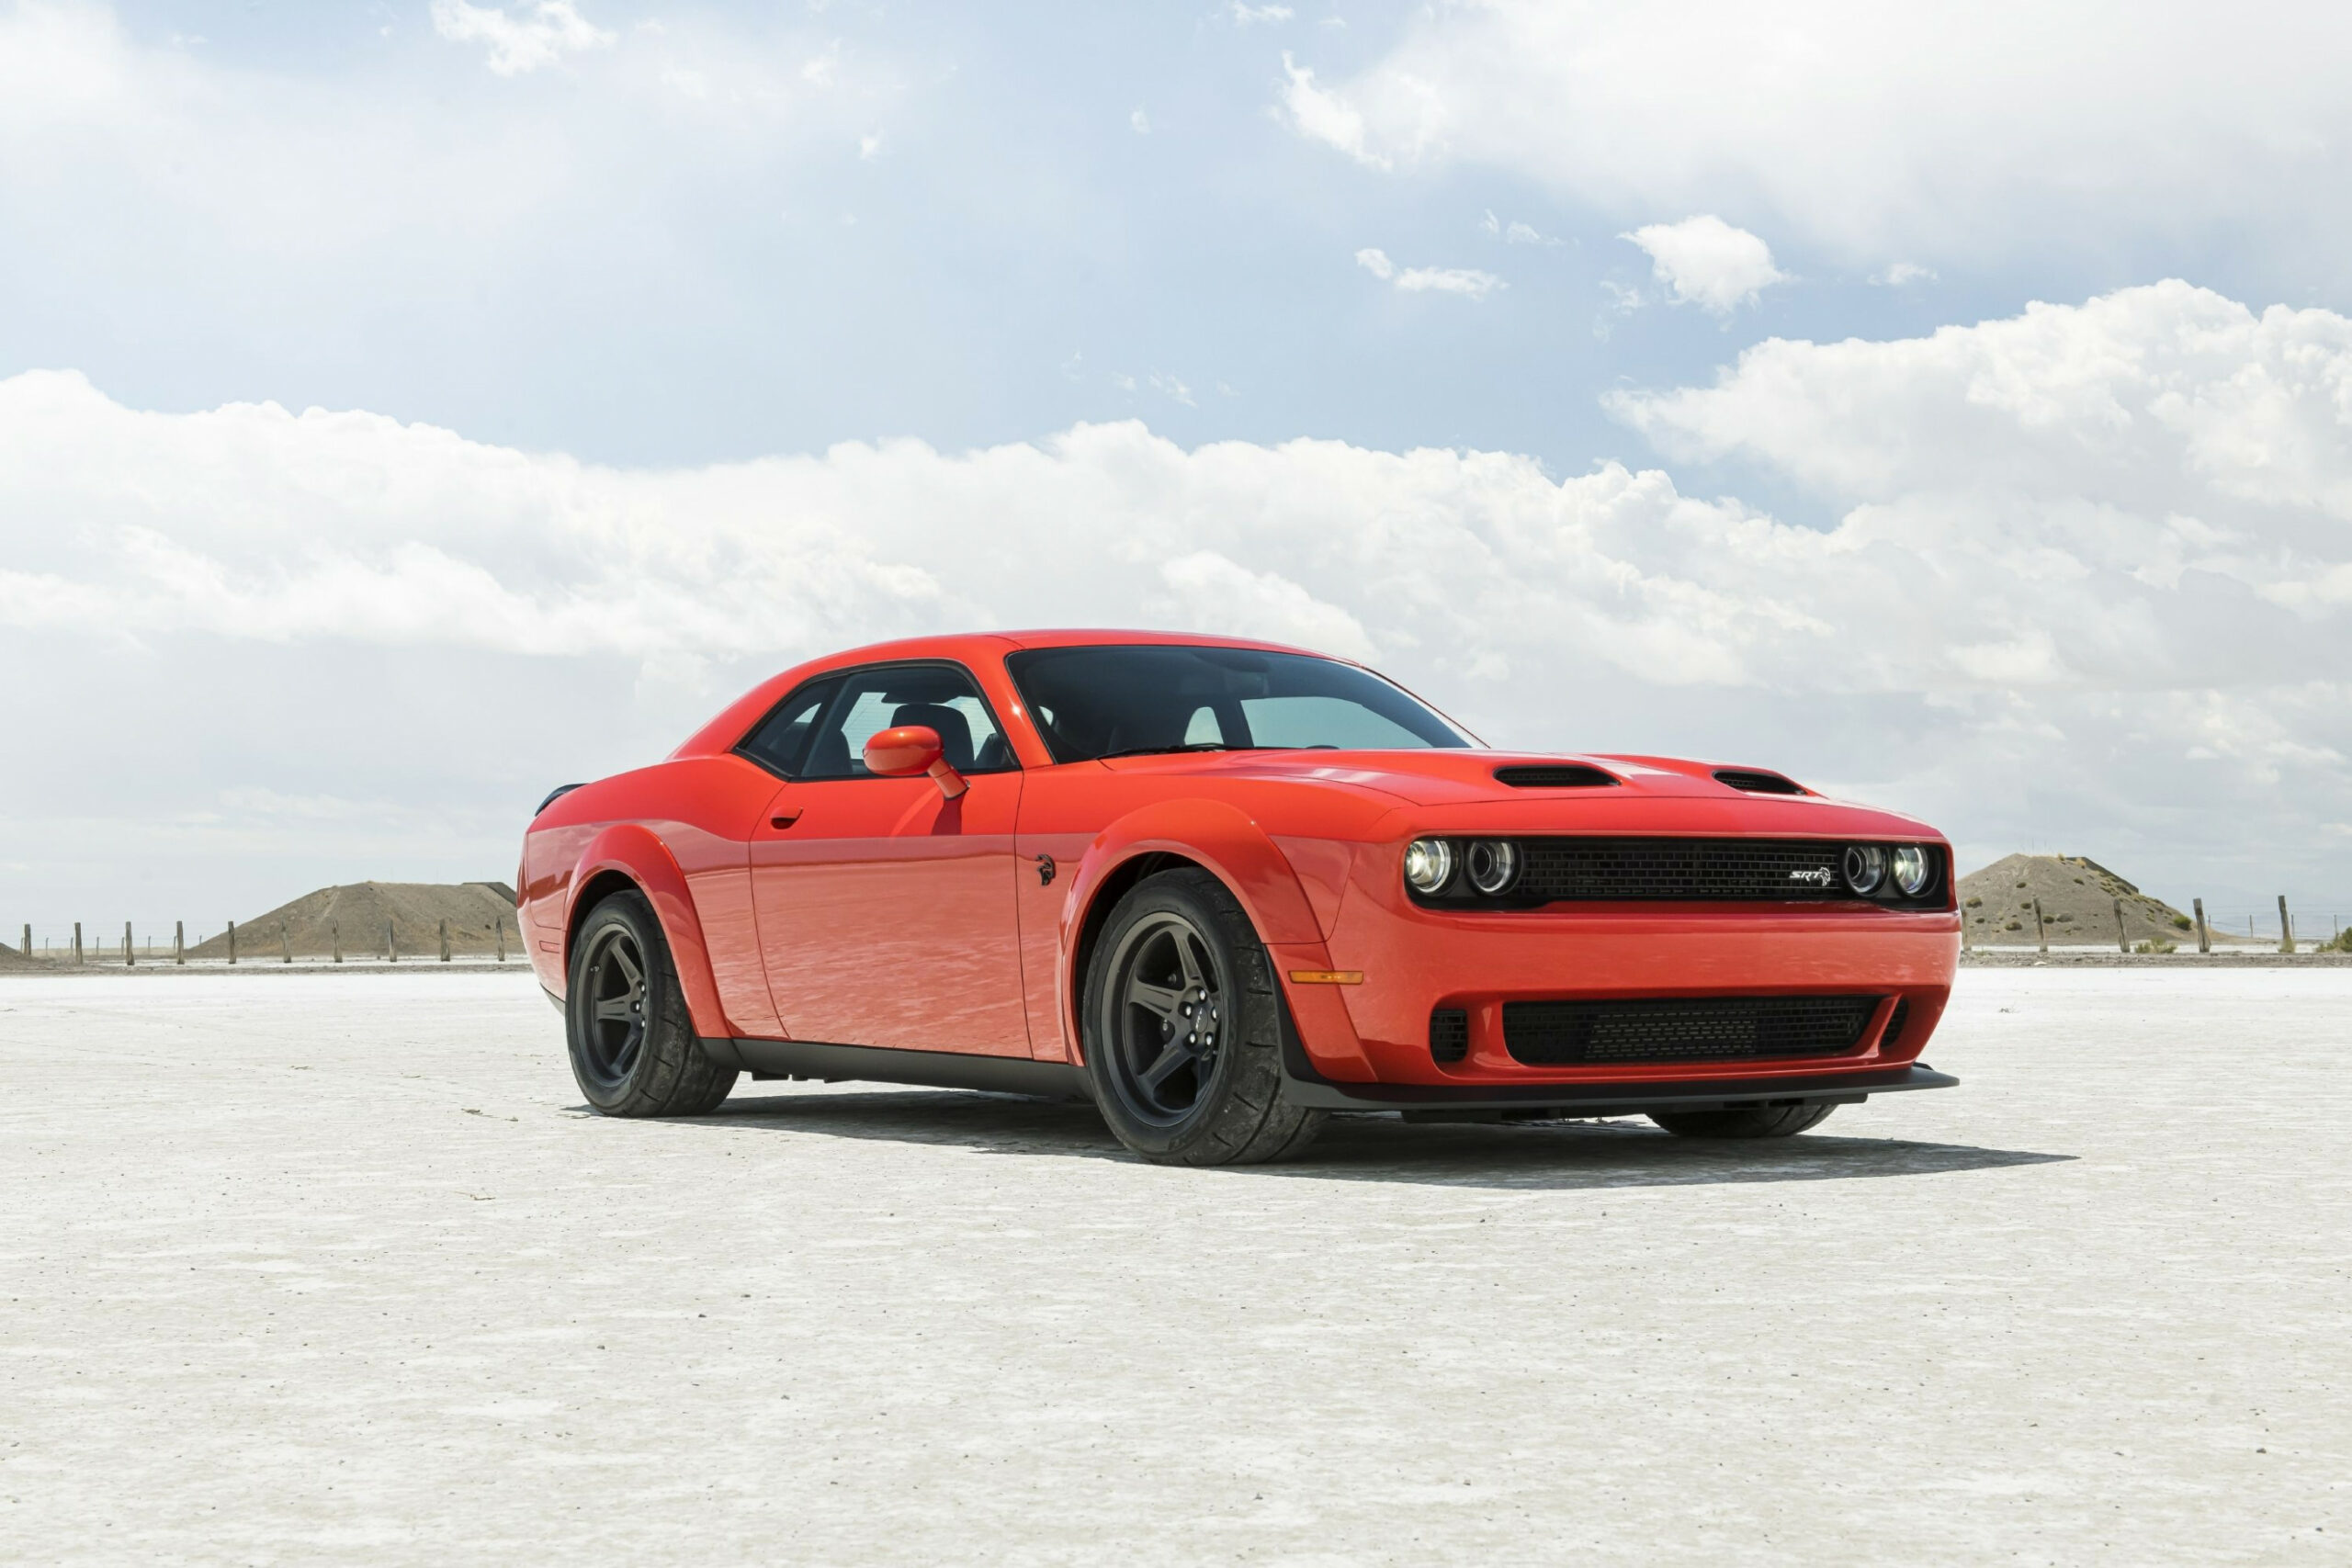 Pricing 2022 Dodge Challenger Red Eye